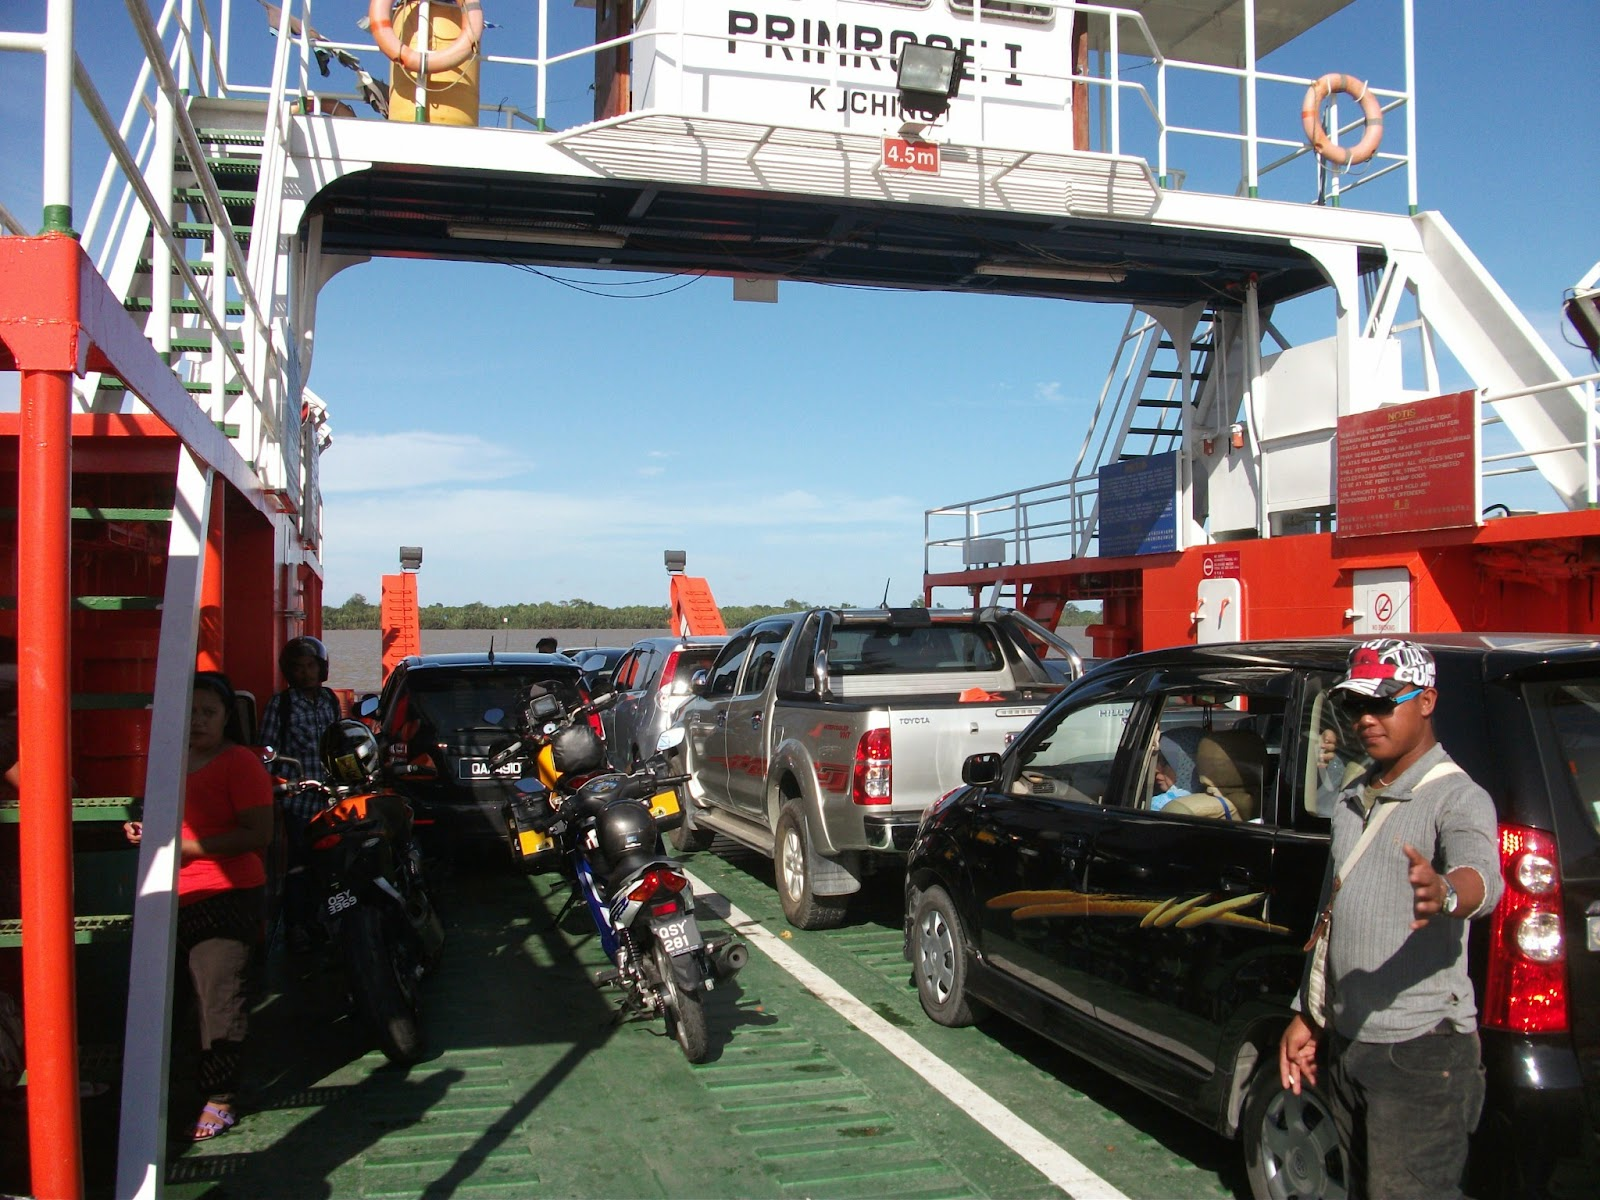 Primrose I - the Batang Saribas ferry